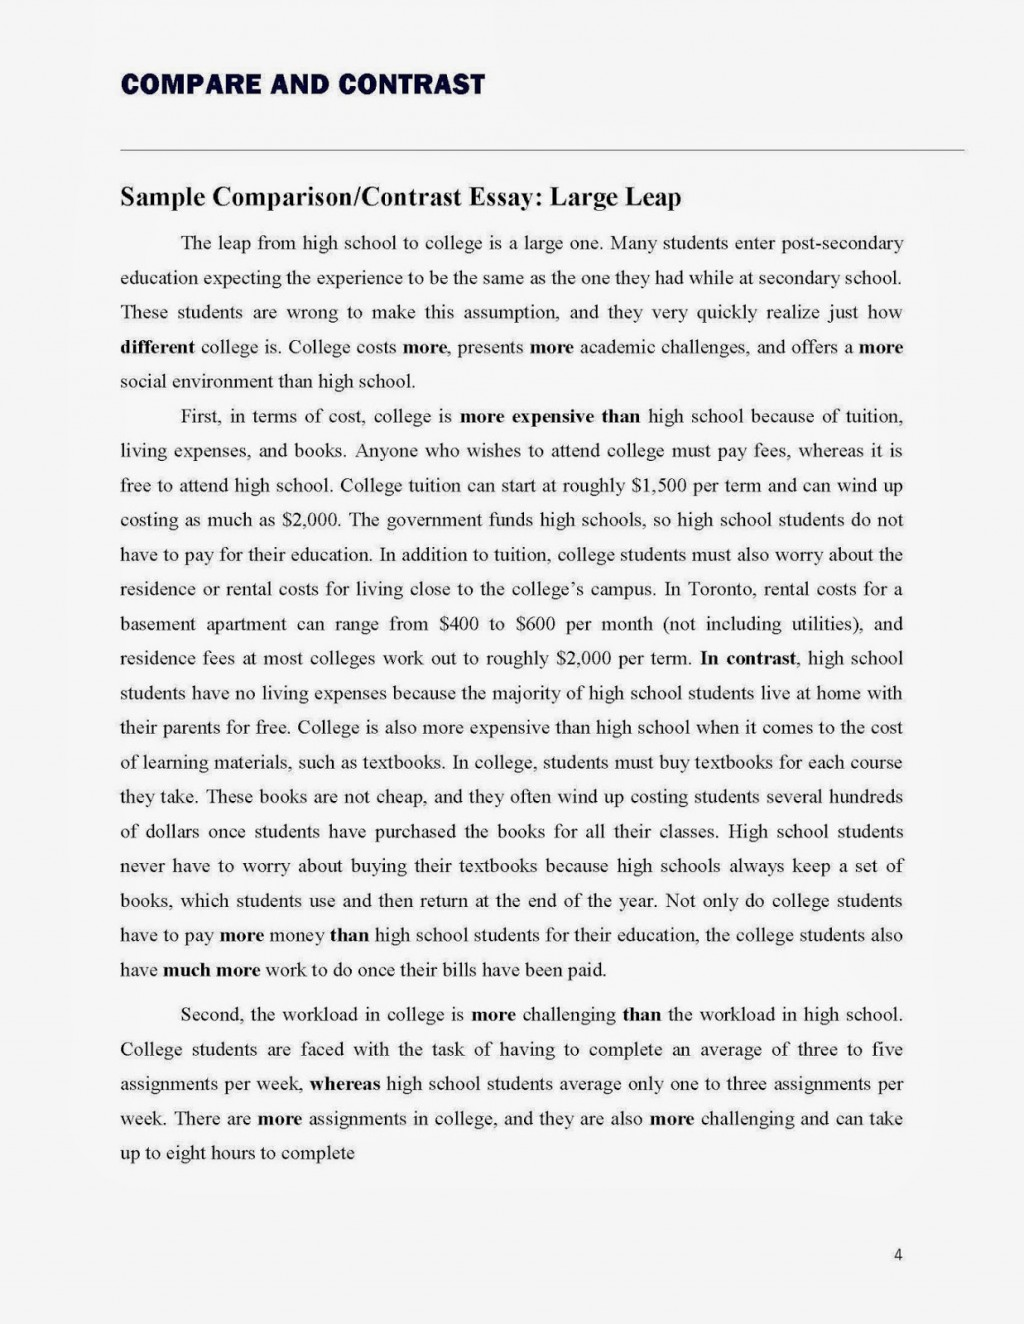 011 Compare And Contrast Essay Compareandcontrastessay Page 4h125 Frightening Outline Block Method Ideas High School Template For Middle Large